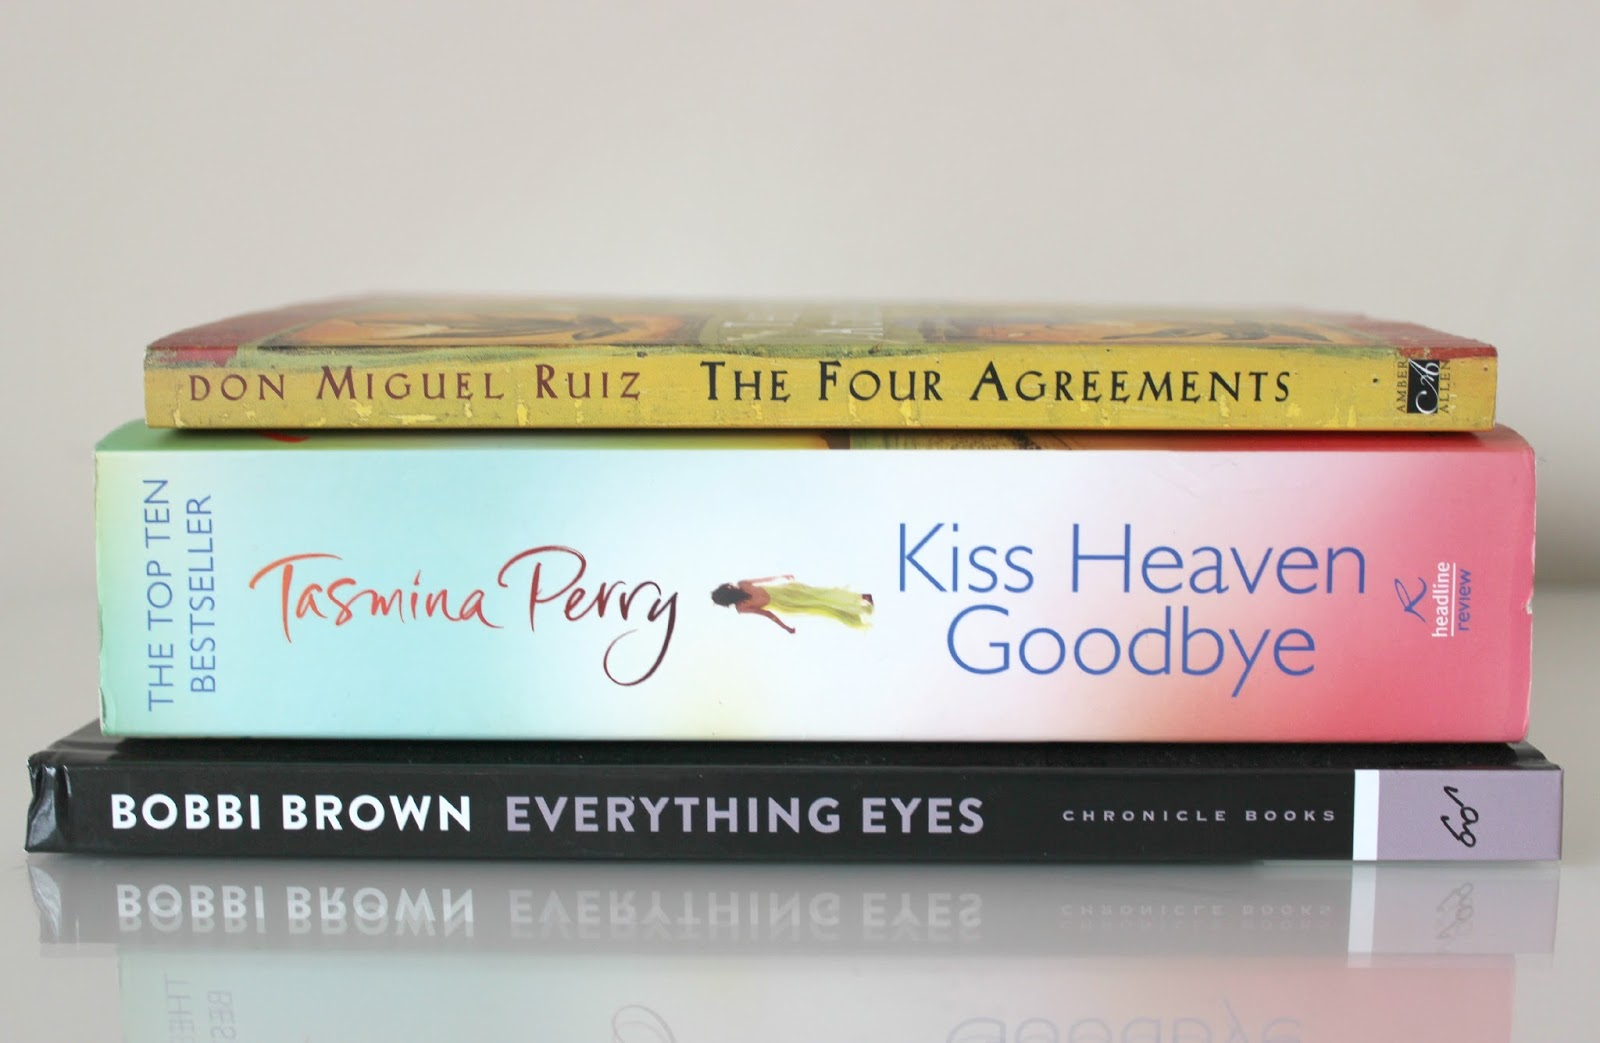 A picture of books I am currently reading